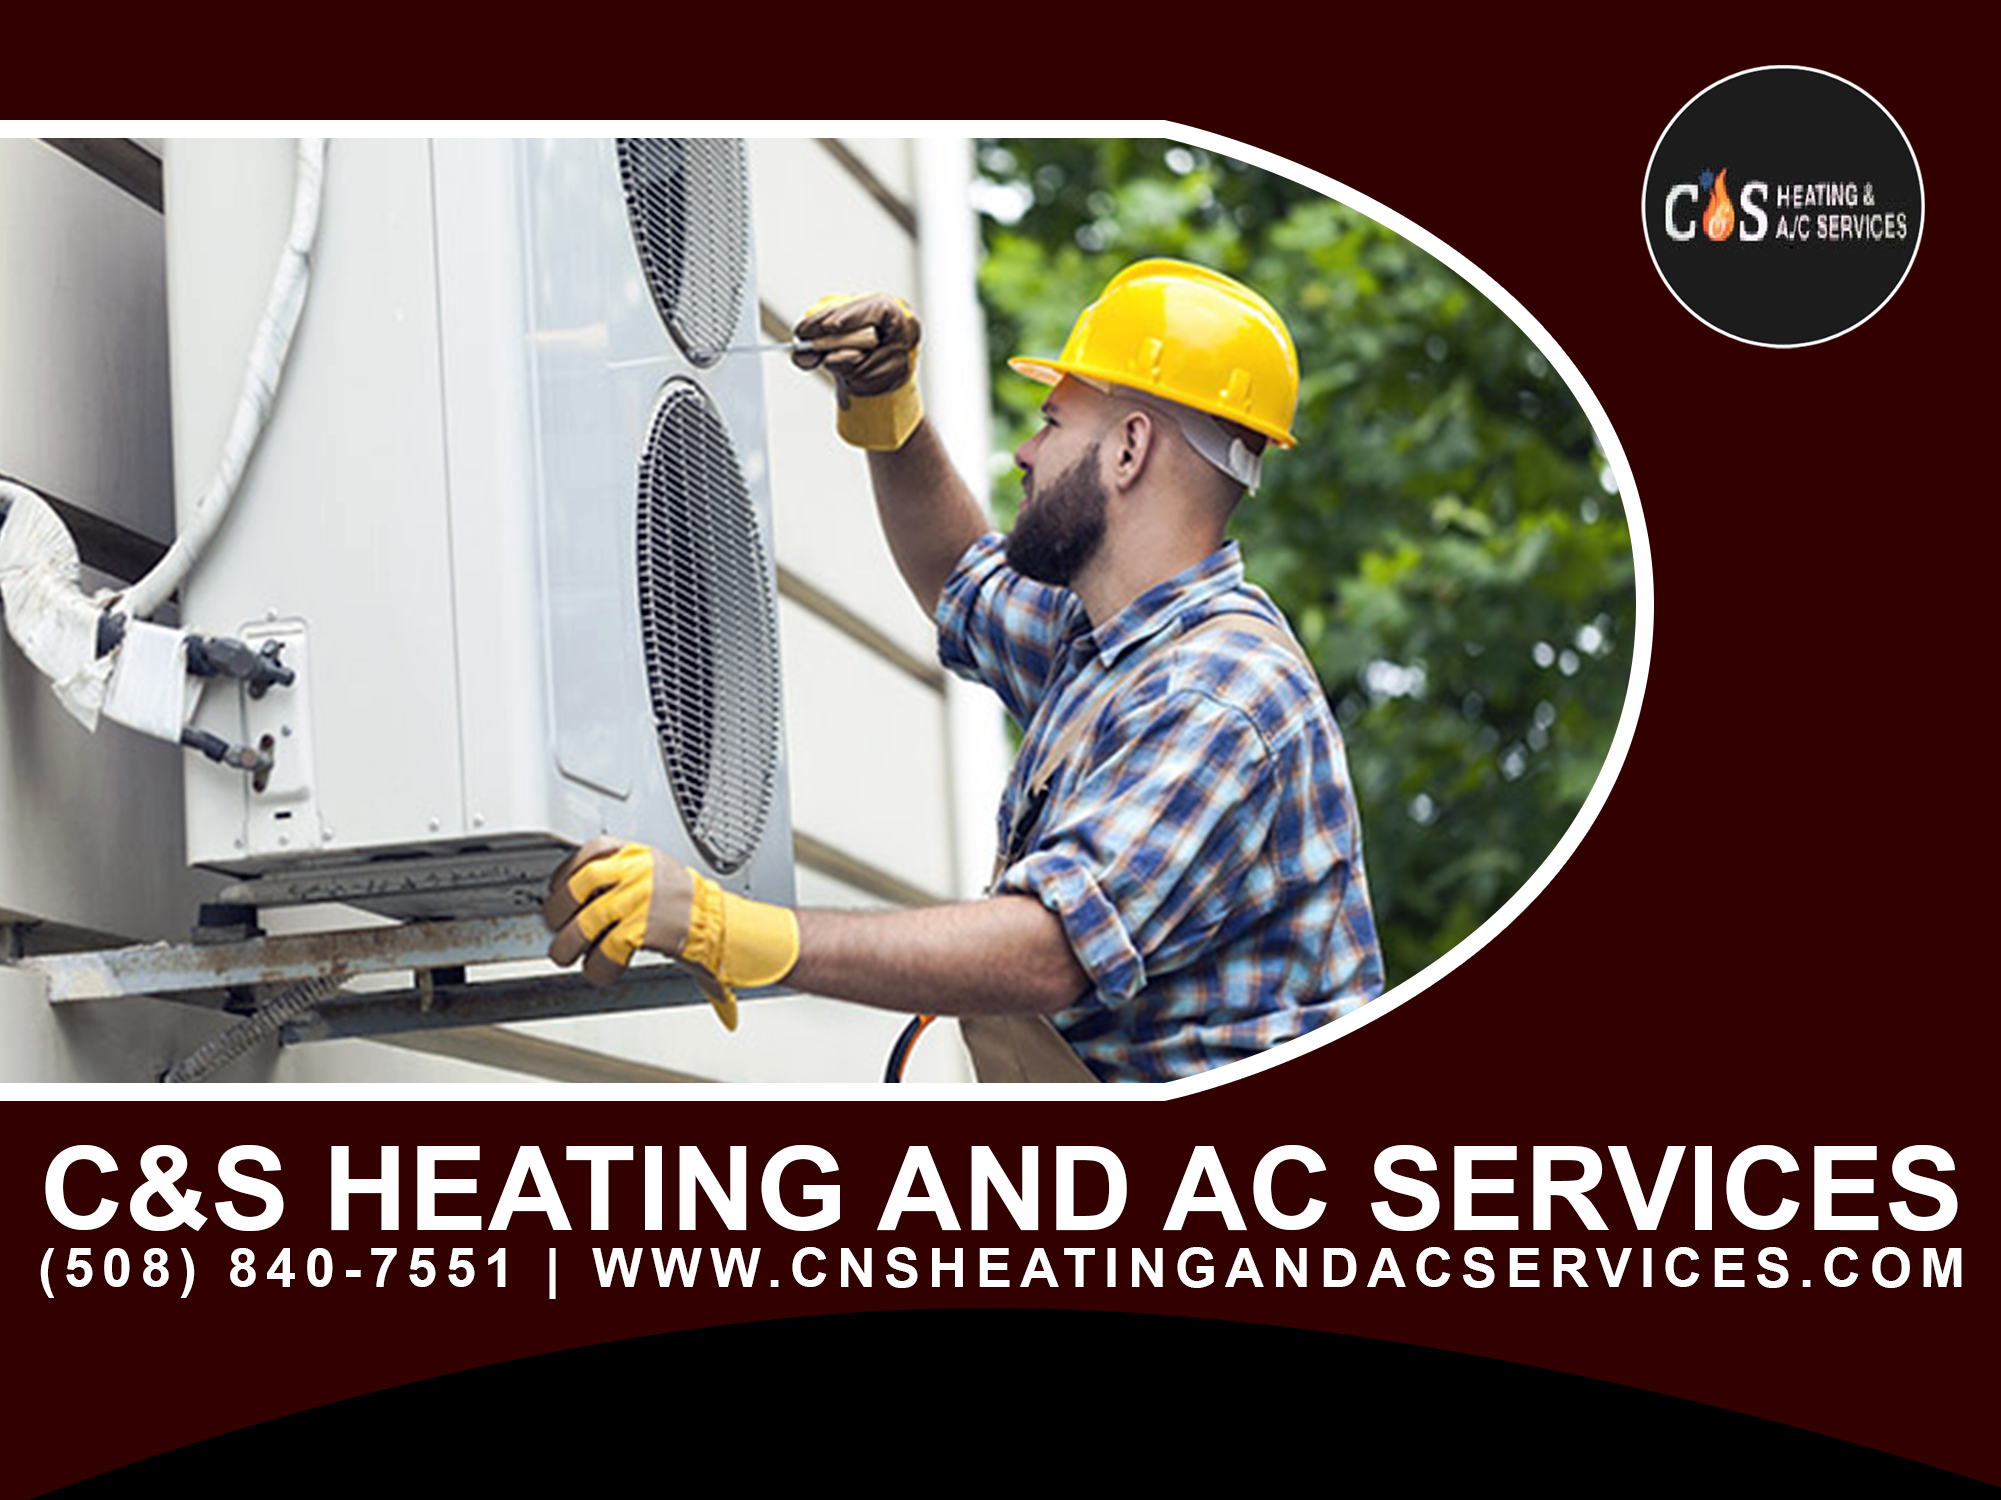 Cs Heating And Ac Services Is A Trusted Provider Of Heating And